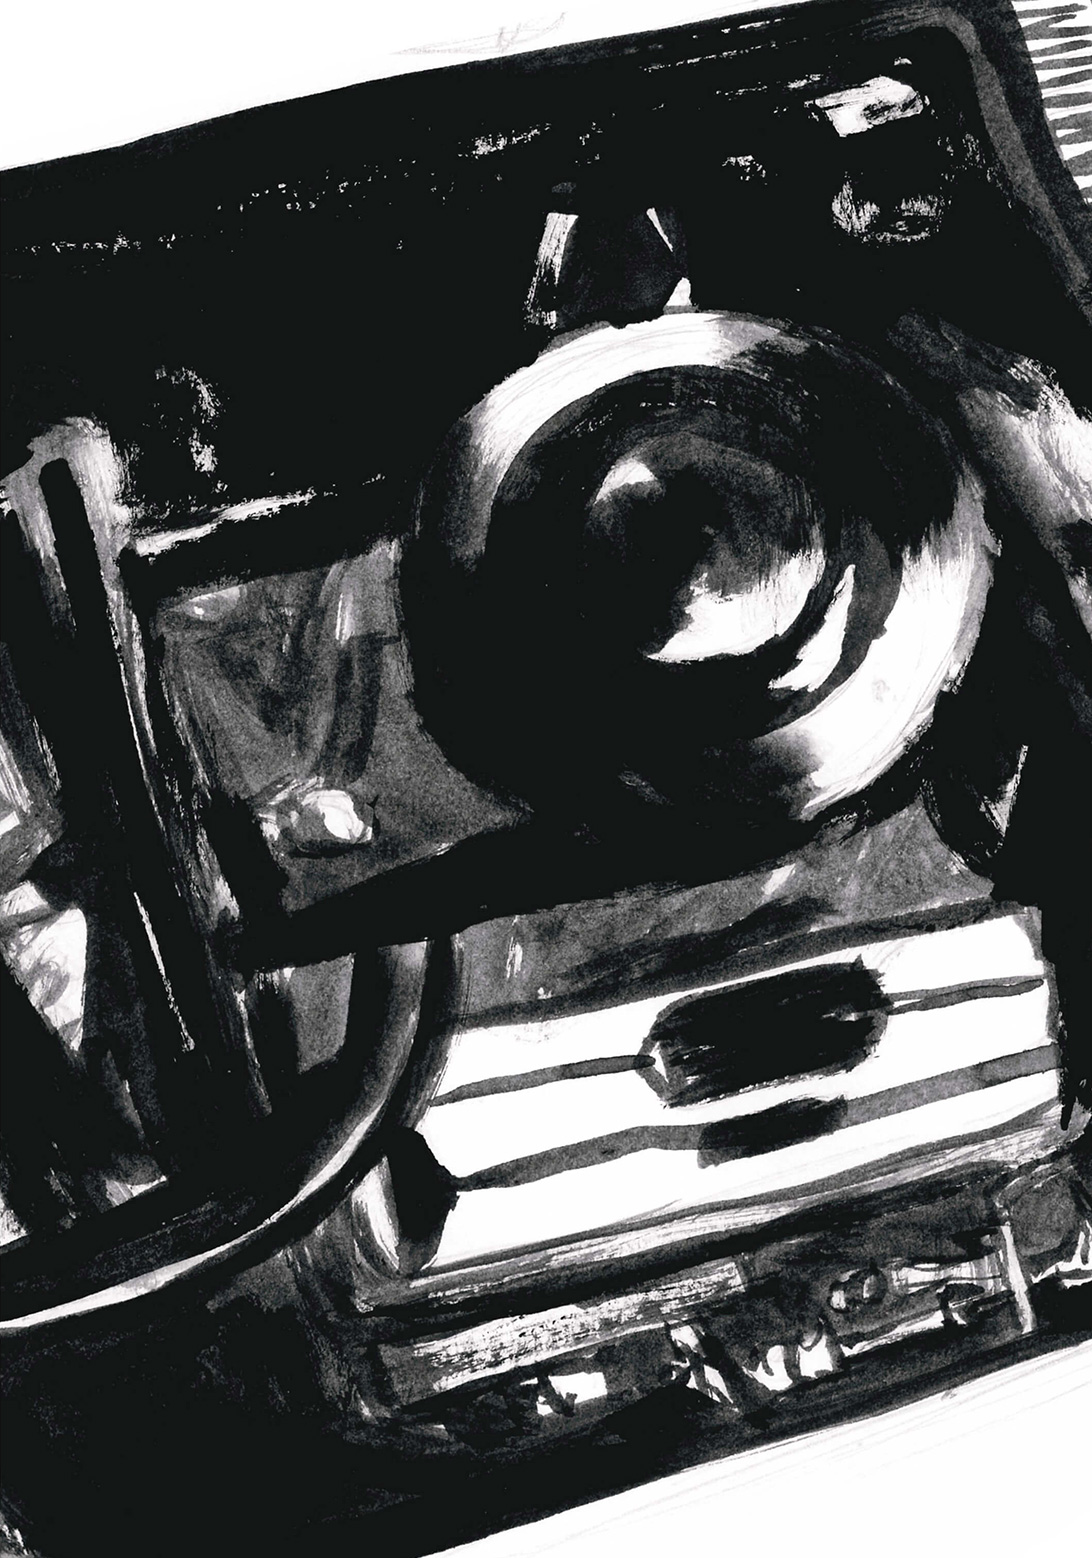 black and white ink drawing of a close-up of a car engine